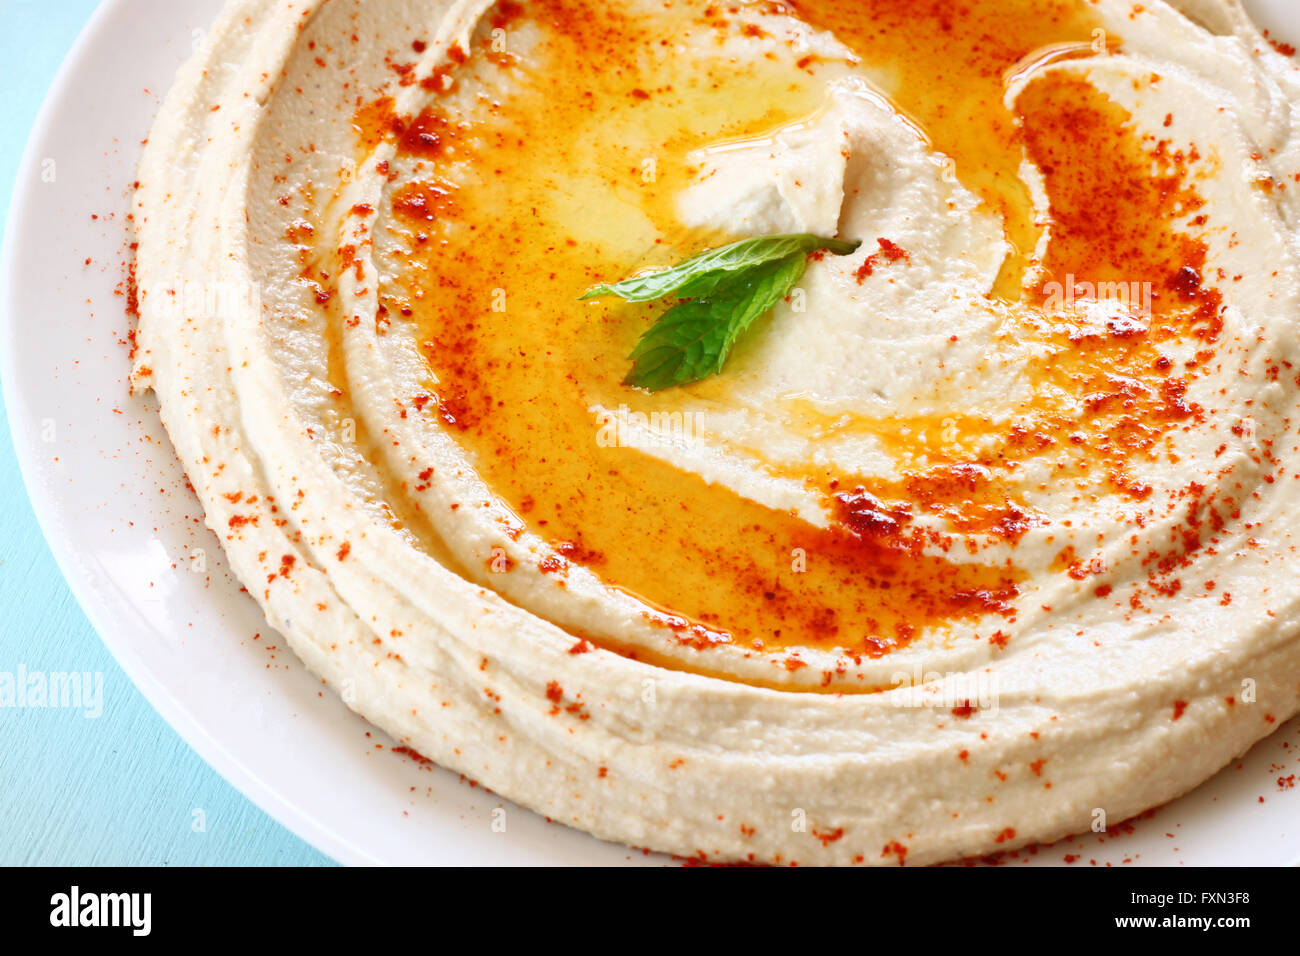 hummus dip plate on wooden table - Stock Image